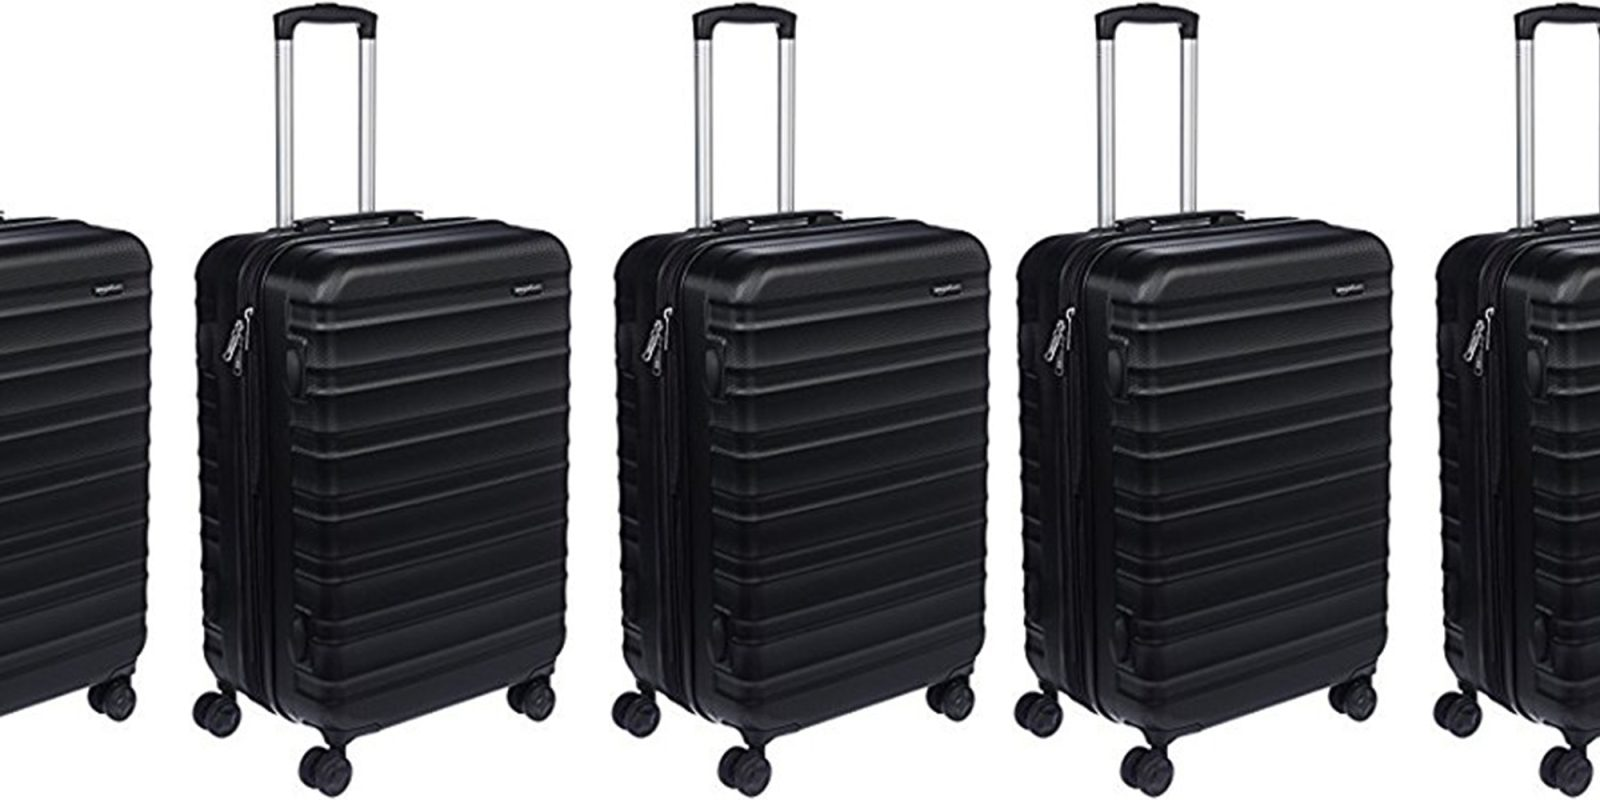 Image result for amazonbasics luggage